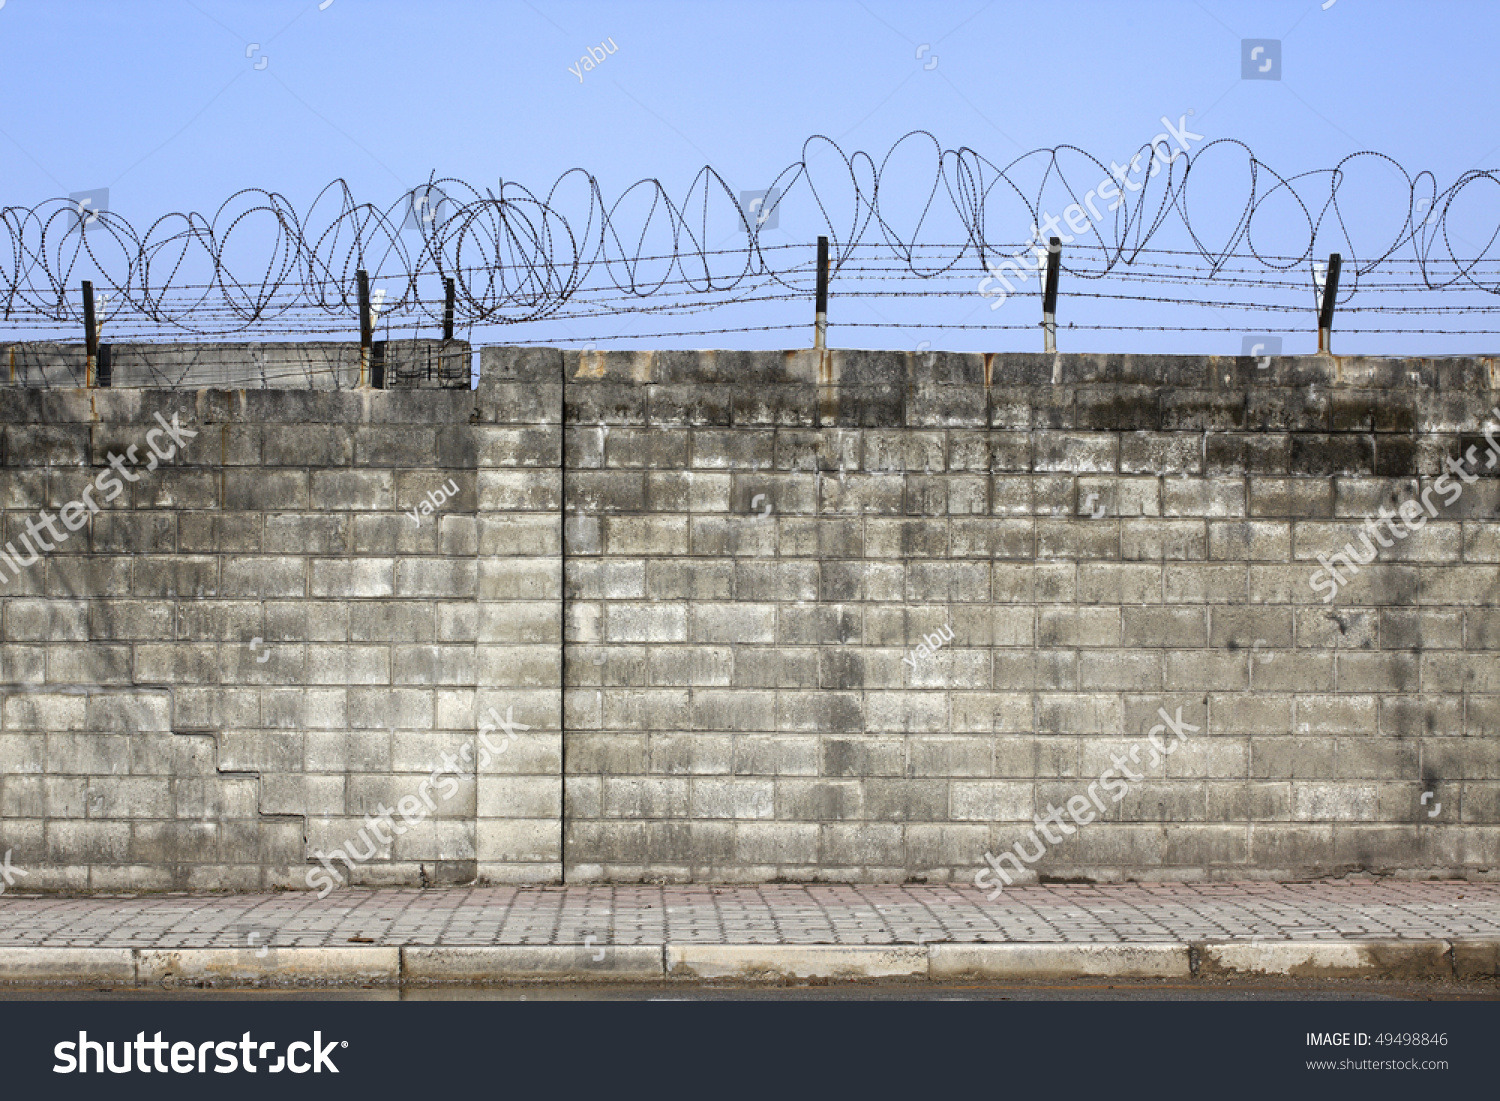 stock-photo-brick-wall-with-barbed-wire-49498846.jpg